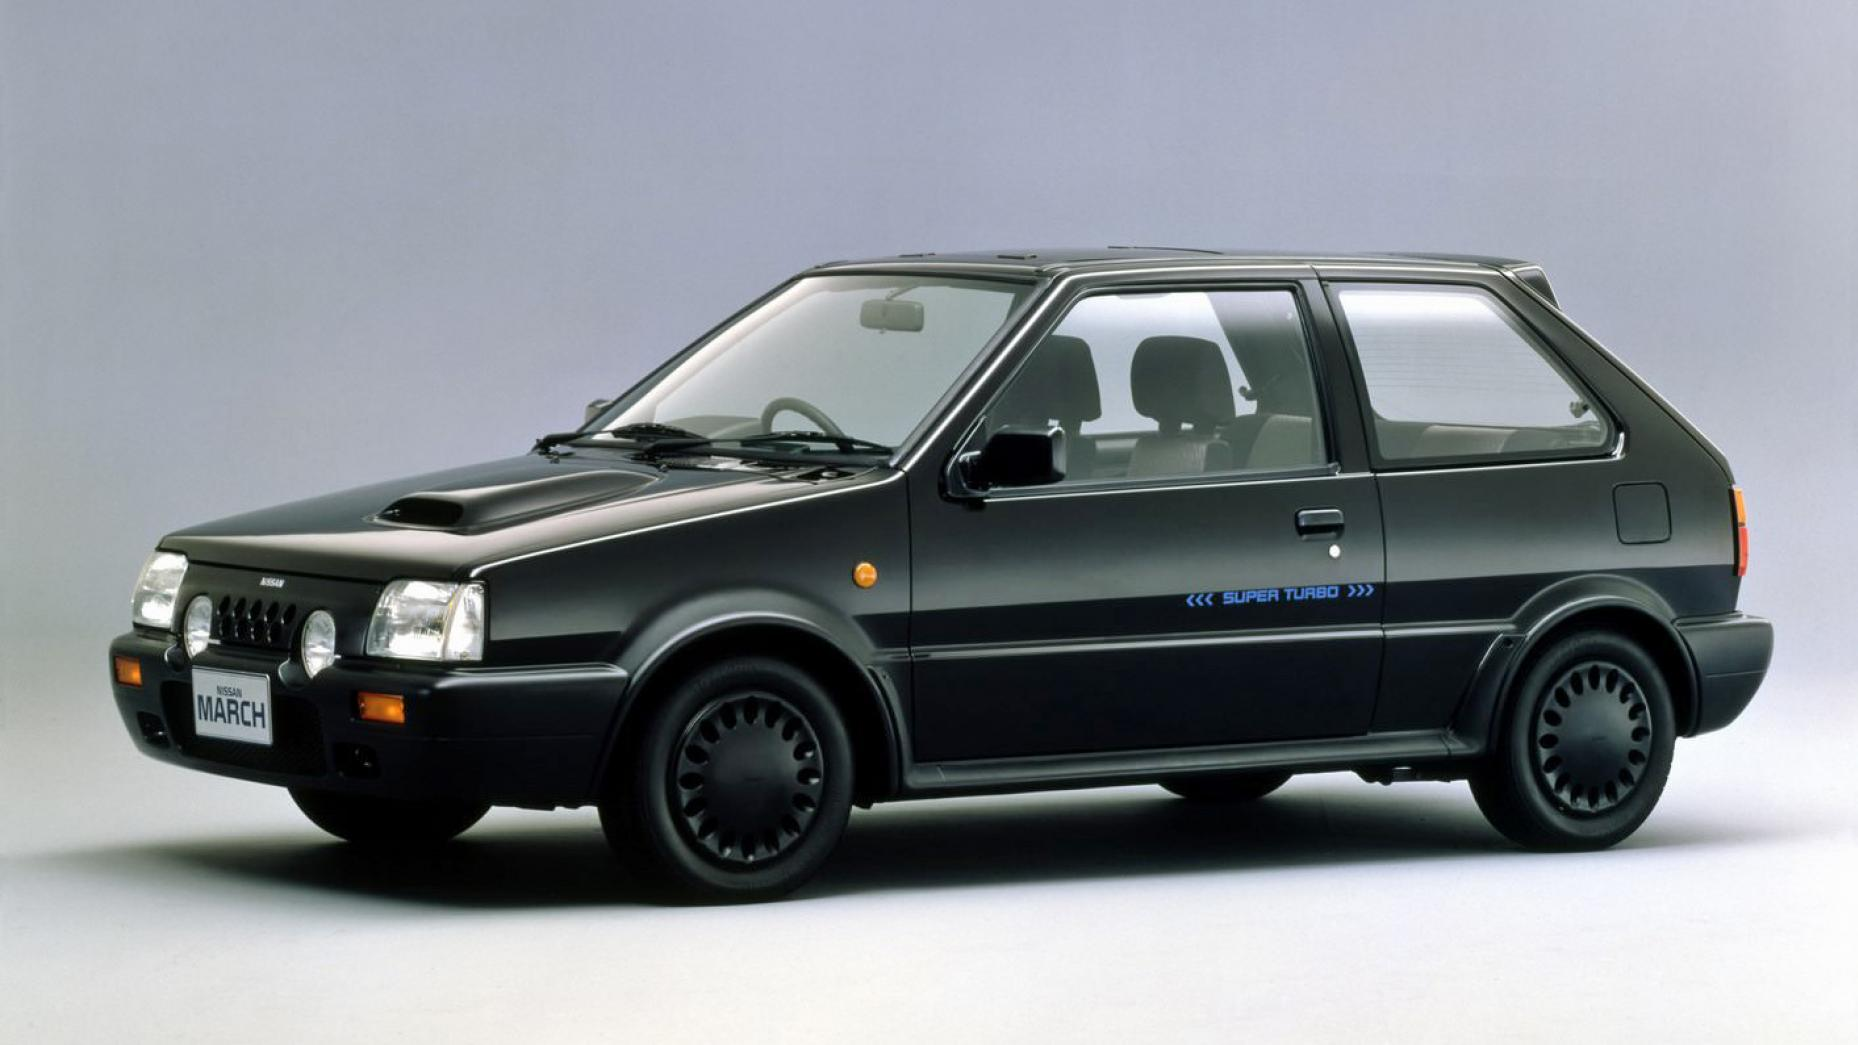 6. Nissan March Super Turbo